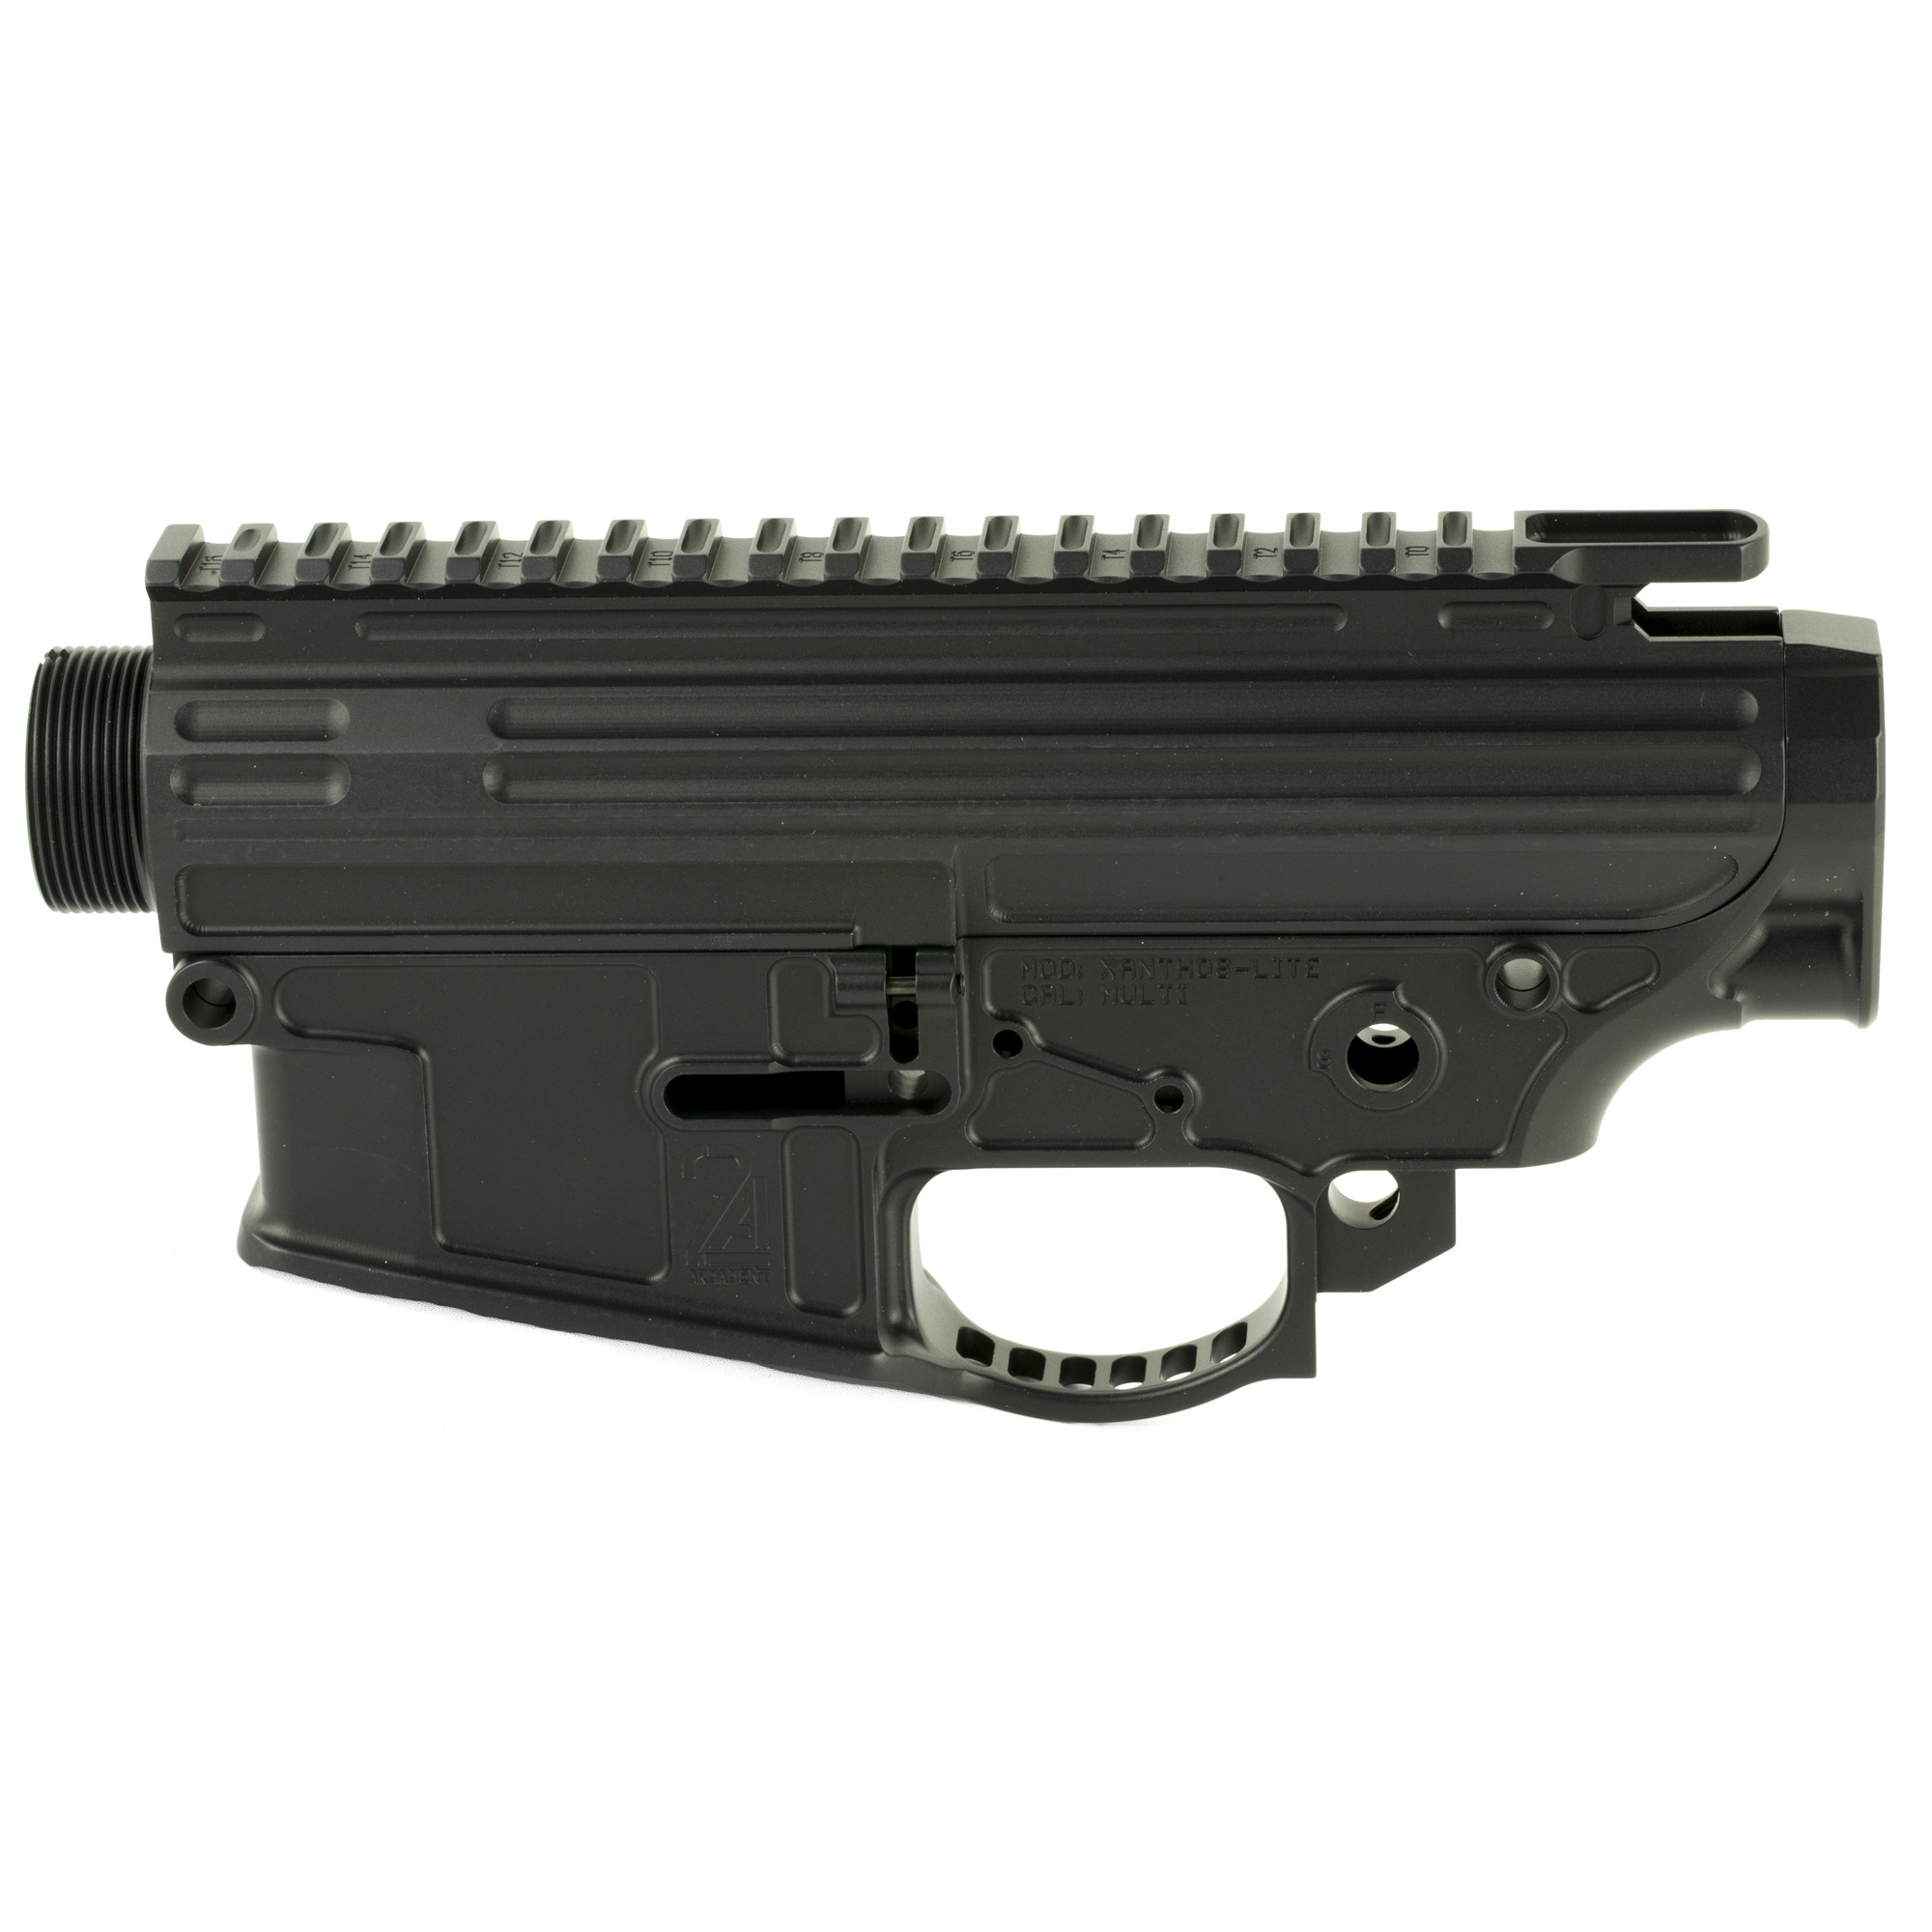 "The XANTHOS-lite was developed to give the end user a lightweight solution for the popular ""large frame"" 308 (LR308/SR-25) pattern of firearms. The XANTHOS-lite is geared towards the user who want's quality material"" design"" and functionality in a large frame build. The XANTHOS-lite shares the common DPMS HIGH standard for rail height"" and will accept most accessories on the market."